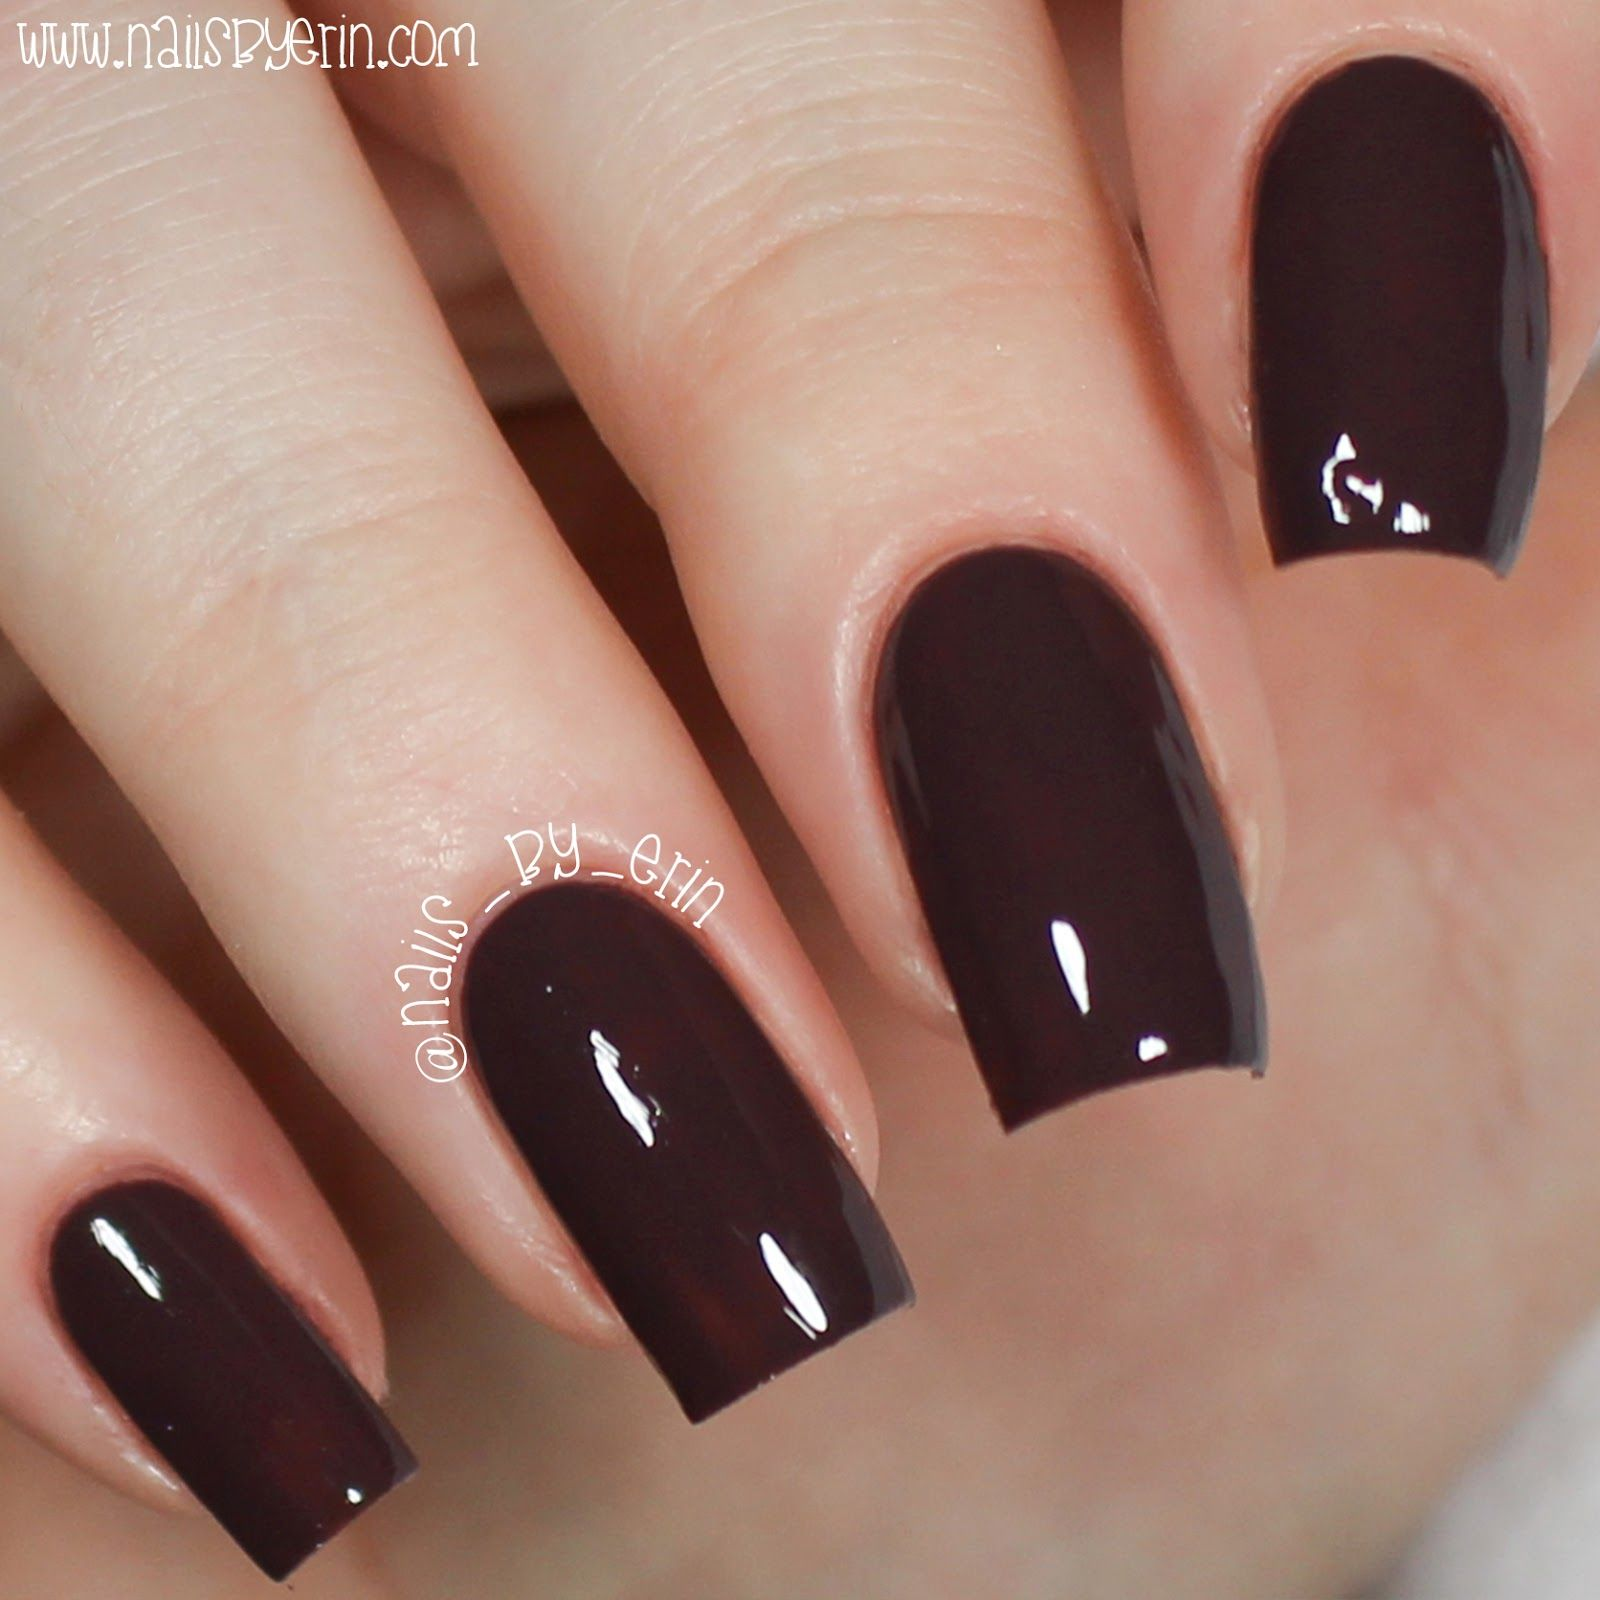 OPI+That%27s+What+Friends+Are+Thor+pic2.jpg (1600×1600) | nail color ...